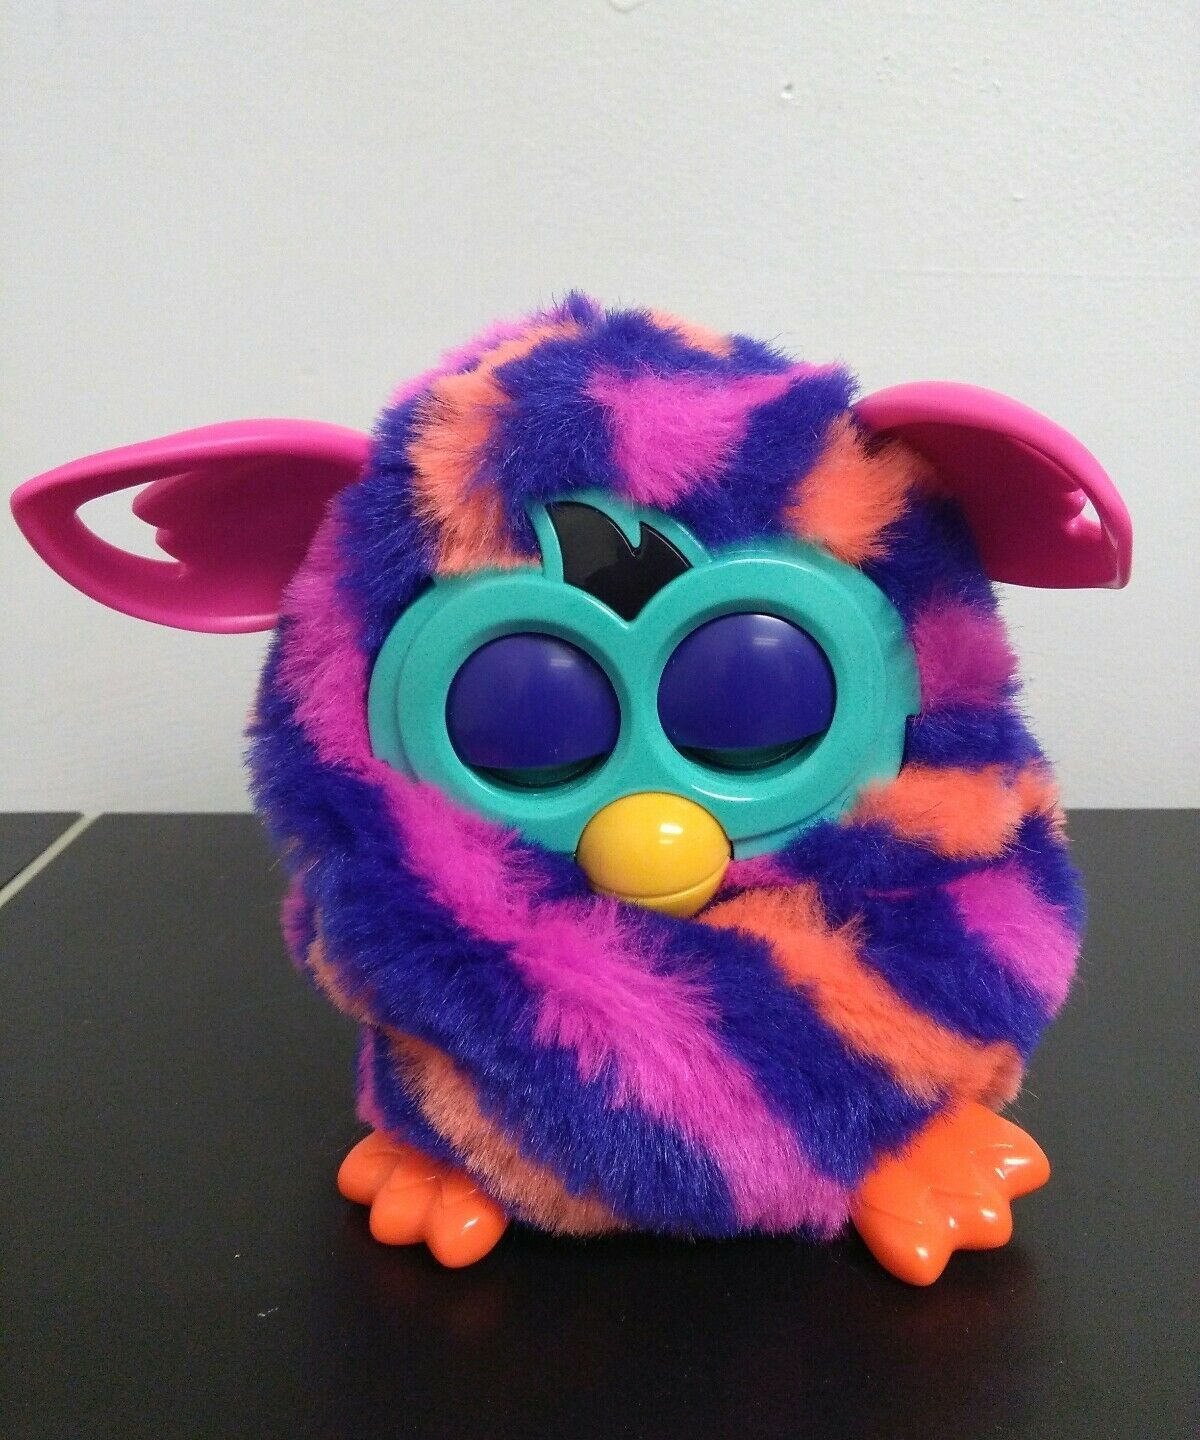 Furby Diagonal Stripes Boom Plush Doll Creature Talks Learns Speak 6S2Yzp1